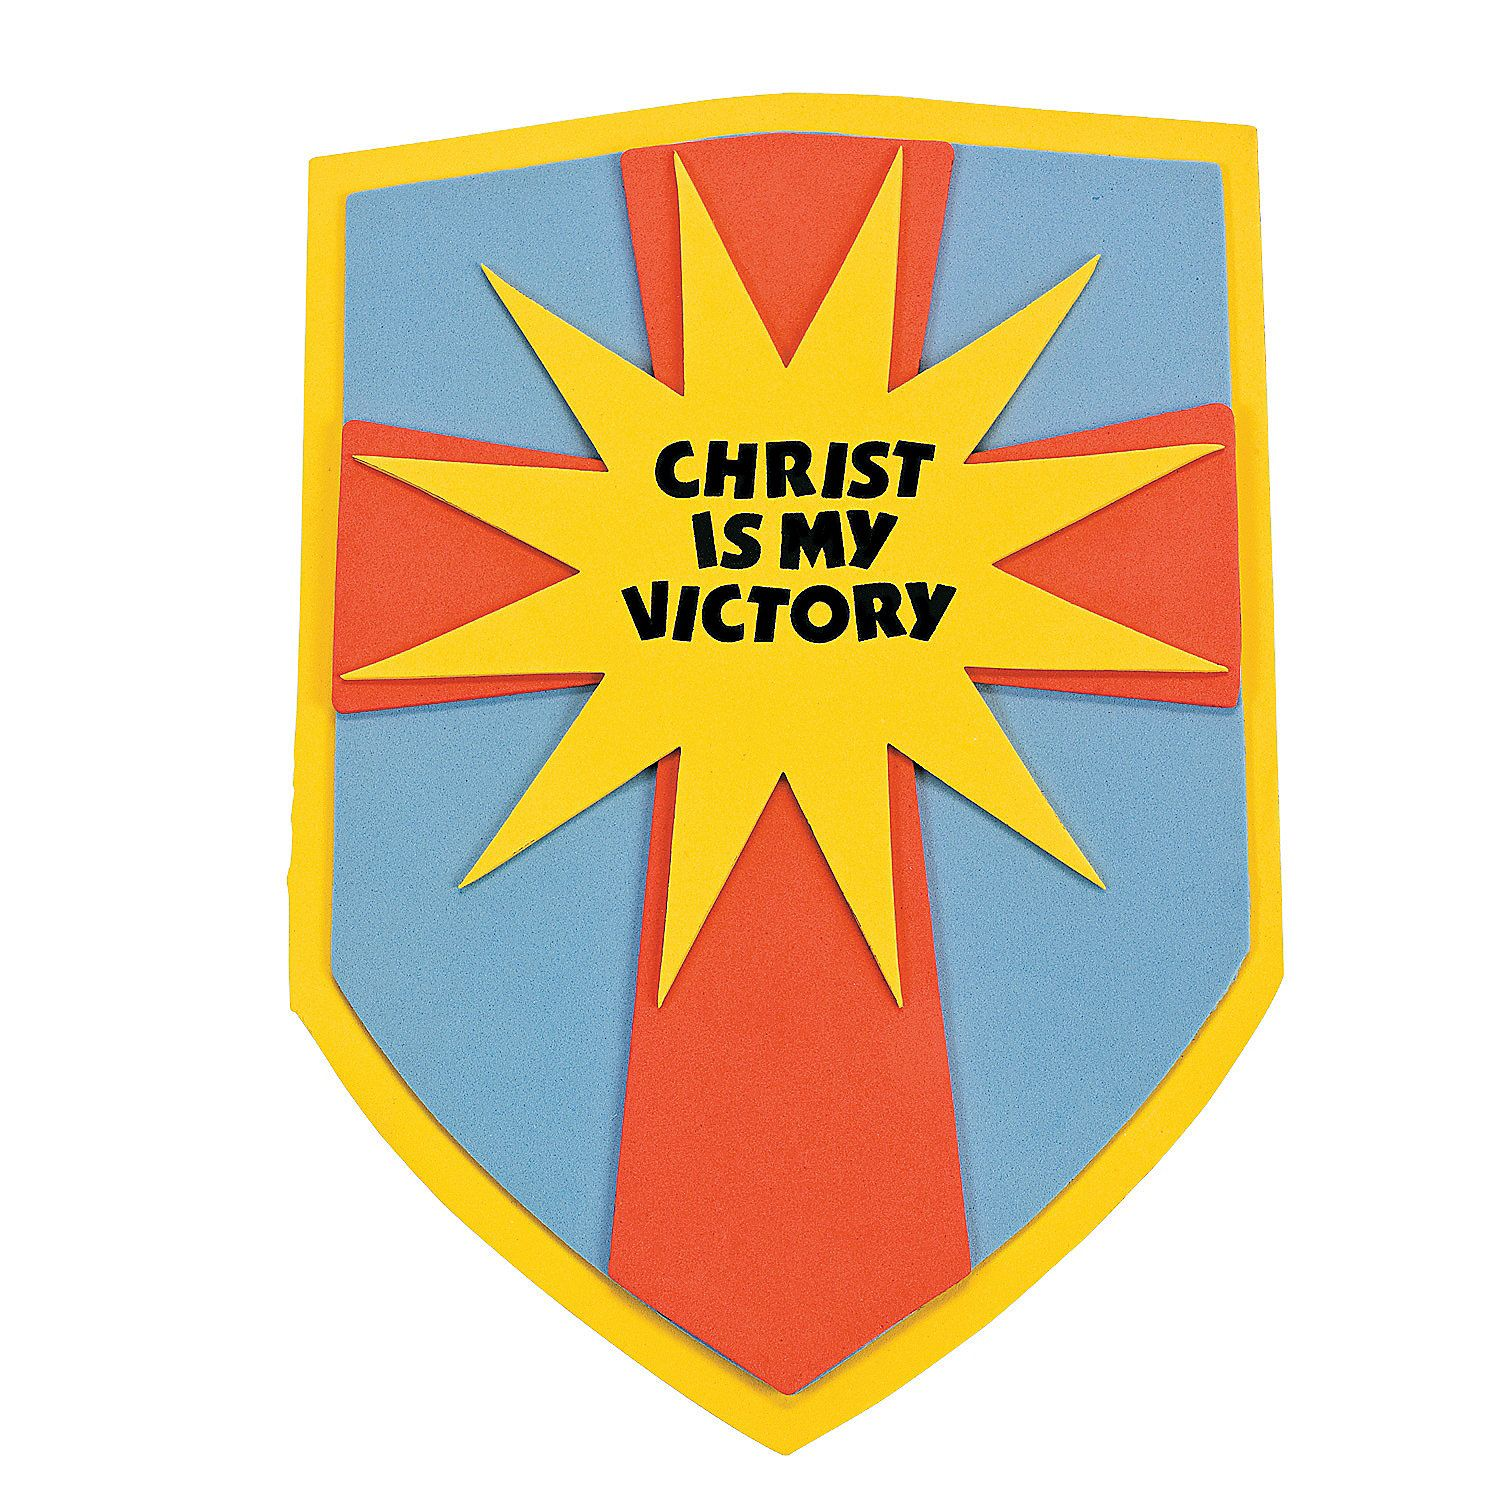 Oriental trading christian crafts -  Christ Is My Victory Shield Craft Kit Orientaltrading Com